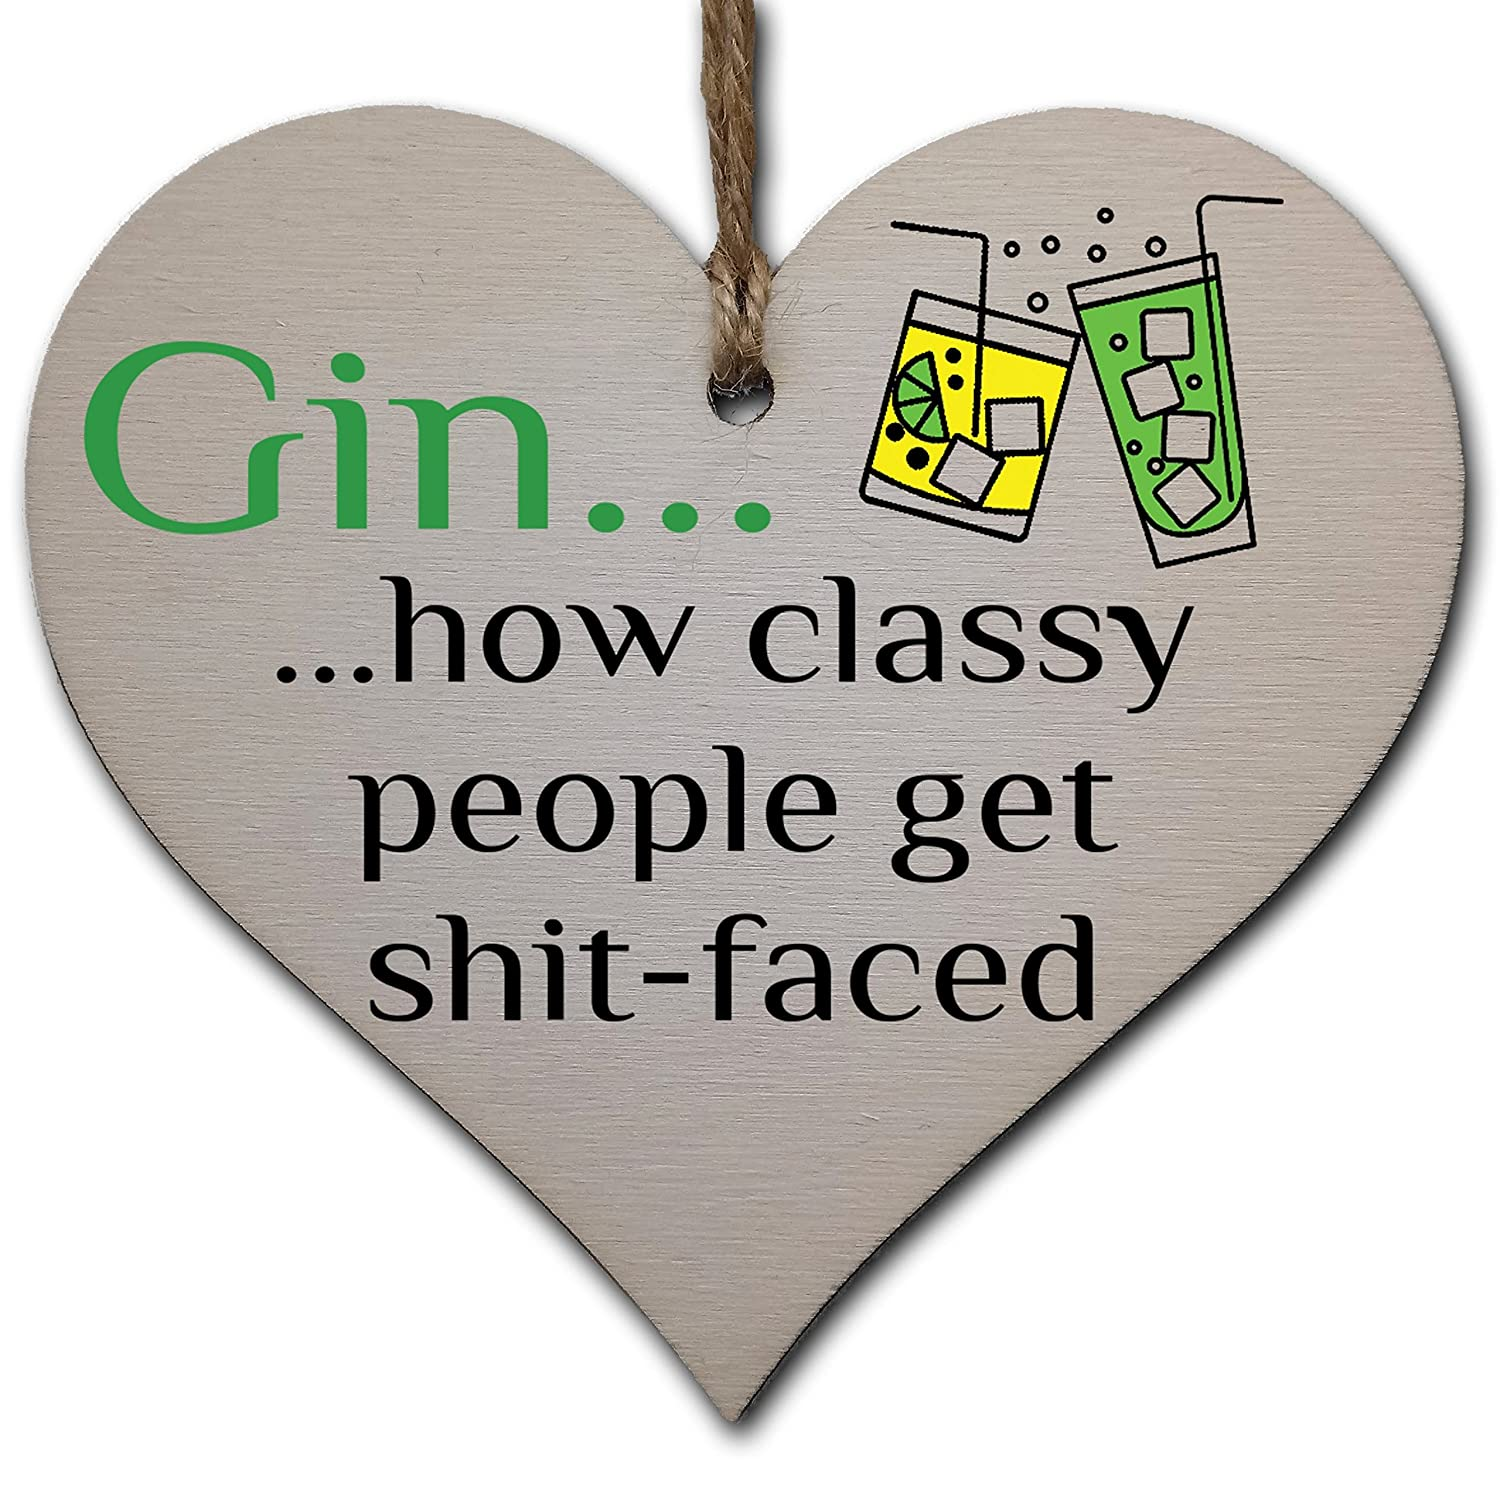 Handmade Wooden Hanging Heart Plaque Gift Perfect for Gin Lovers Novelty Funny Keepsake Gift In Can